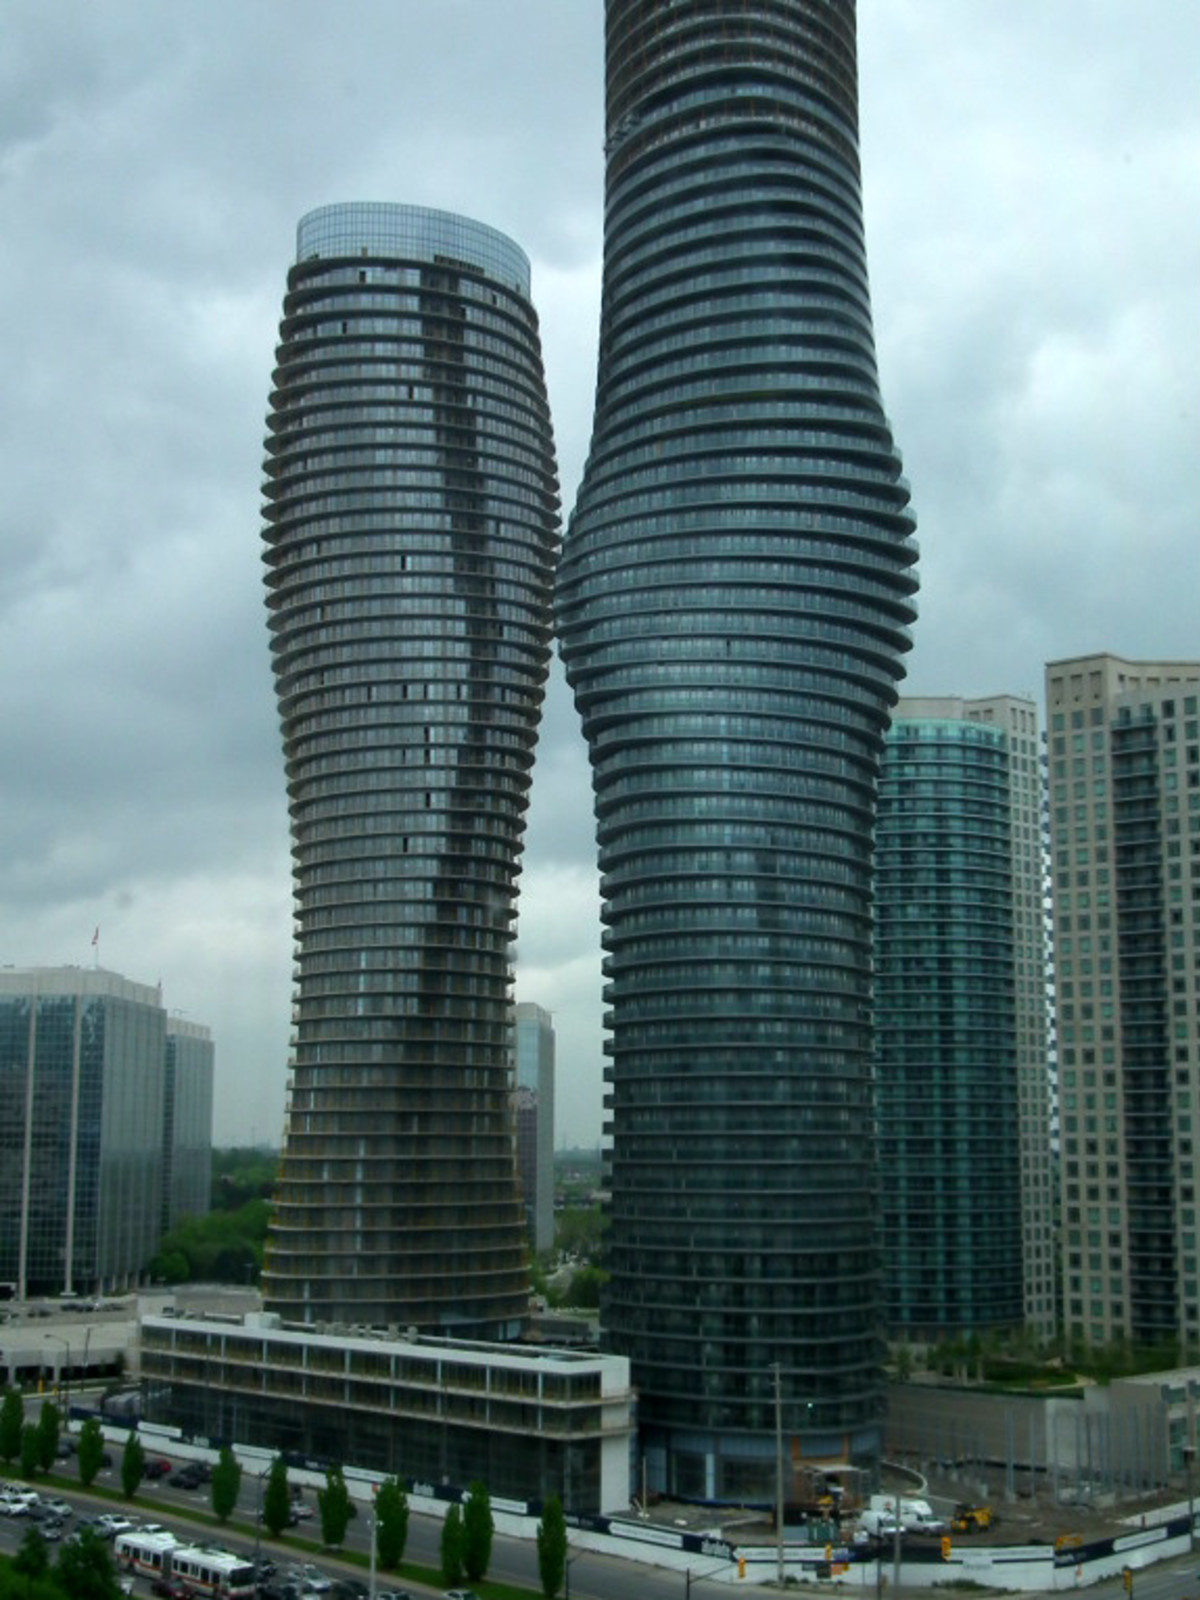 Marilyn Monroe Towers in Canada